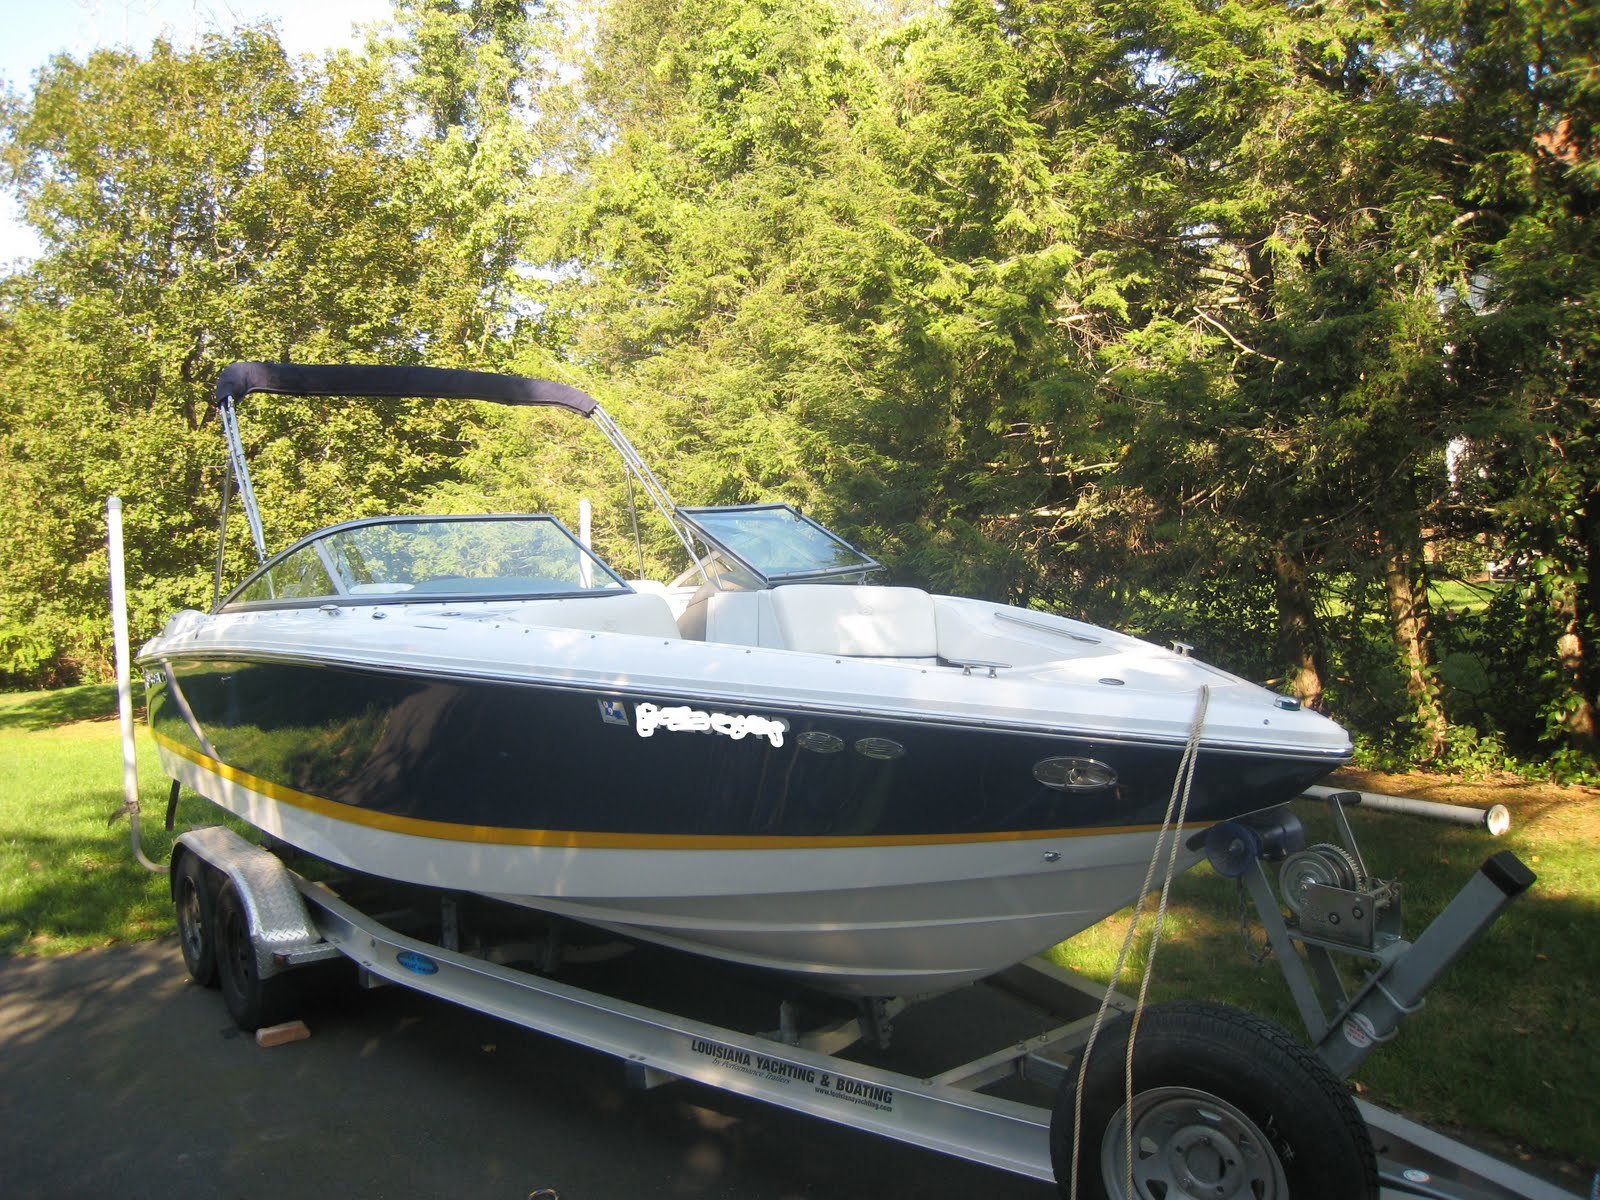 2007 Cobalt 220 for sale. Excellent condition and very well maintained.